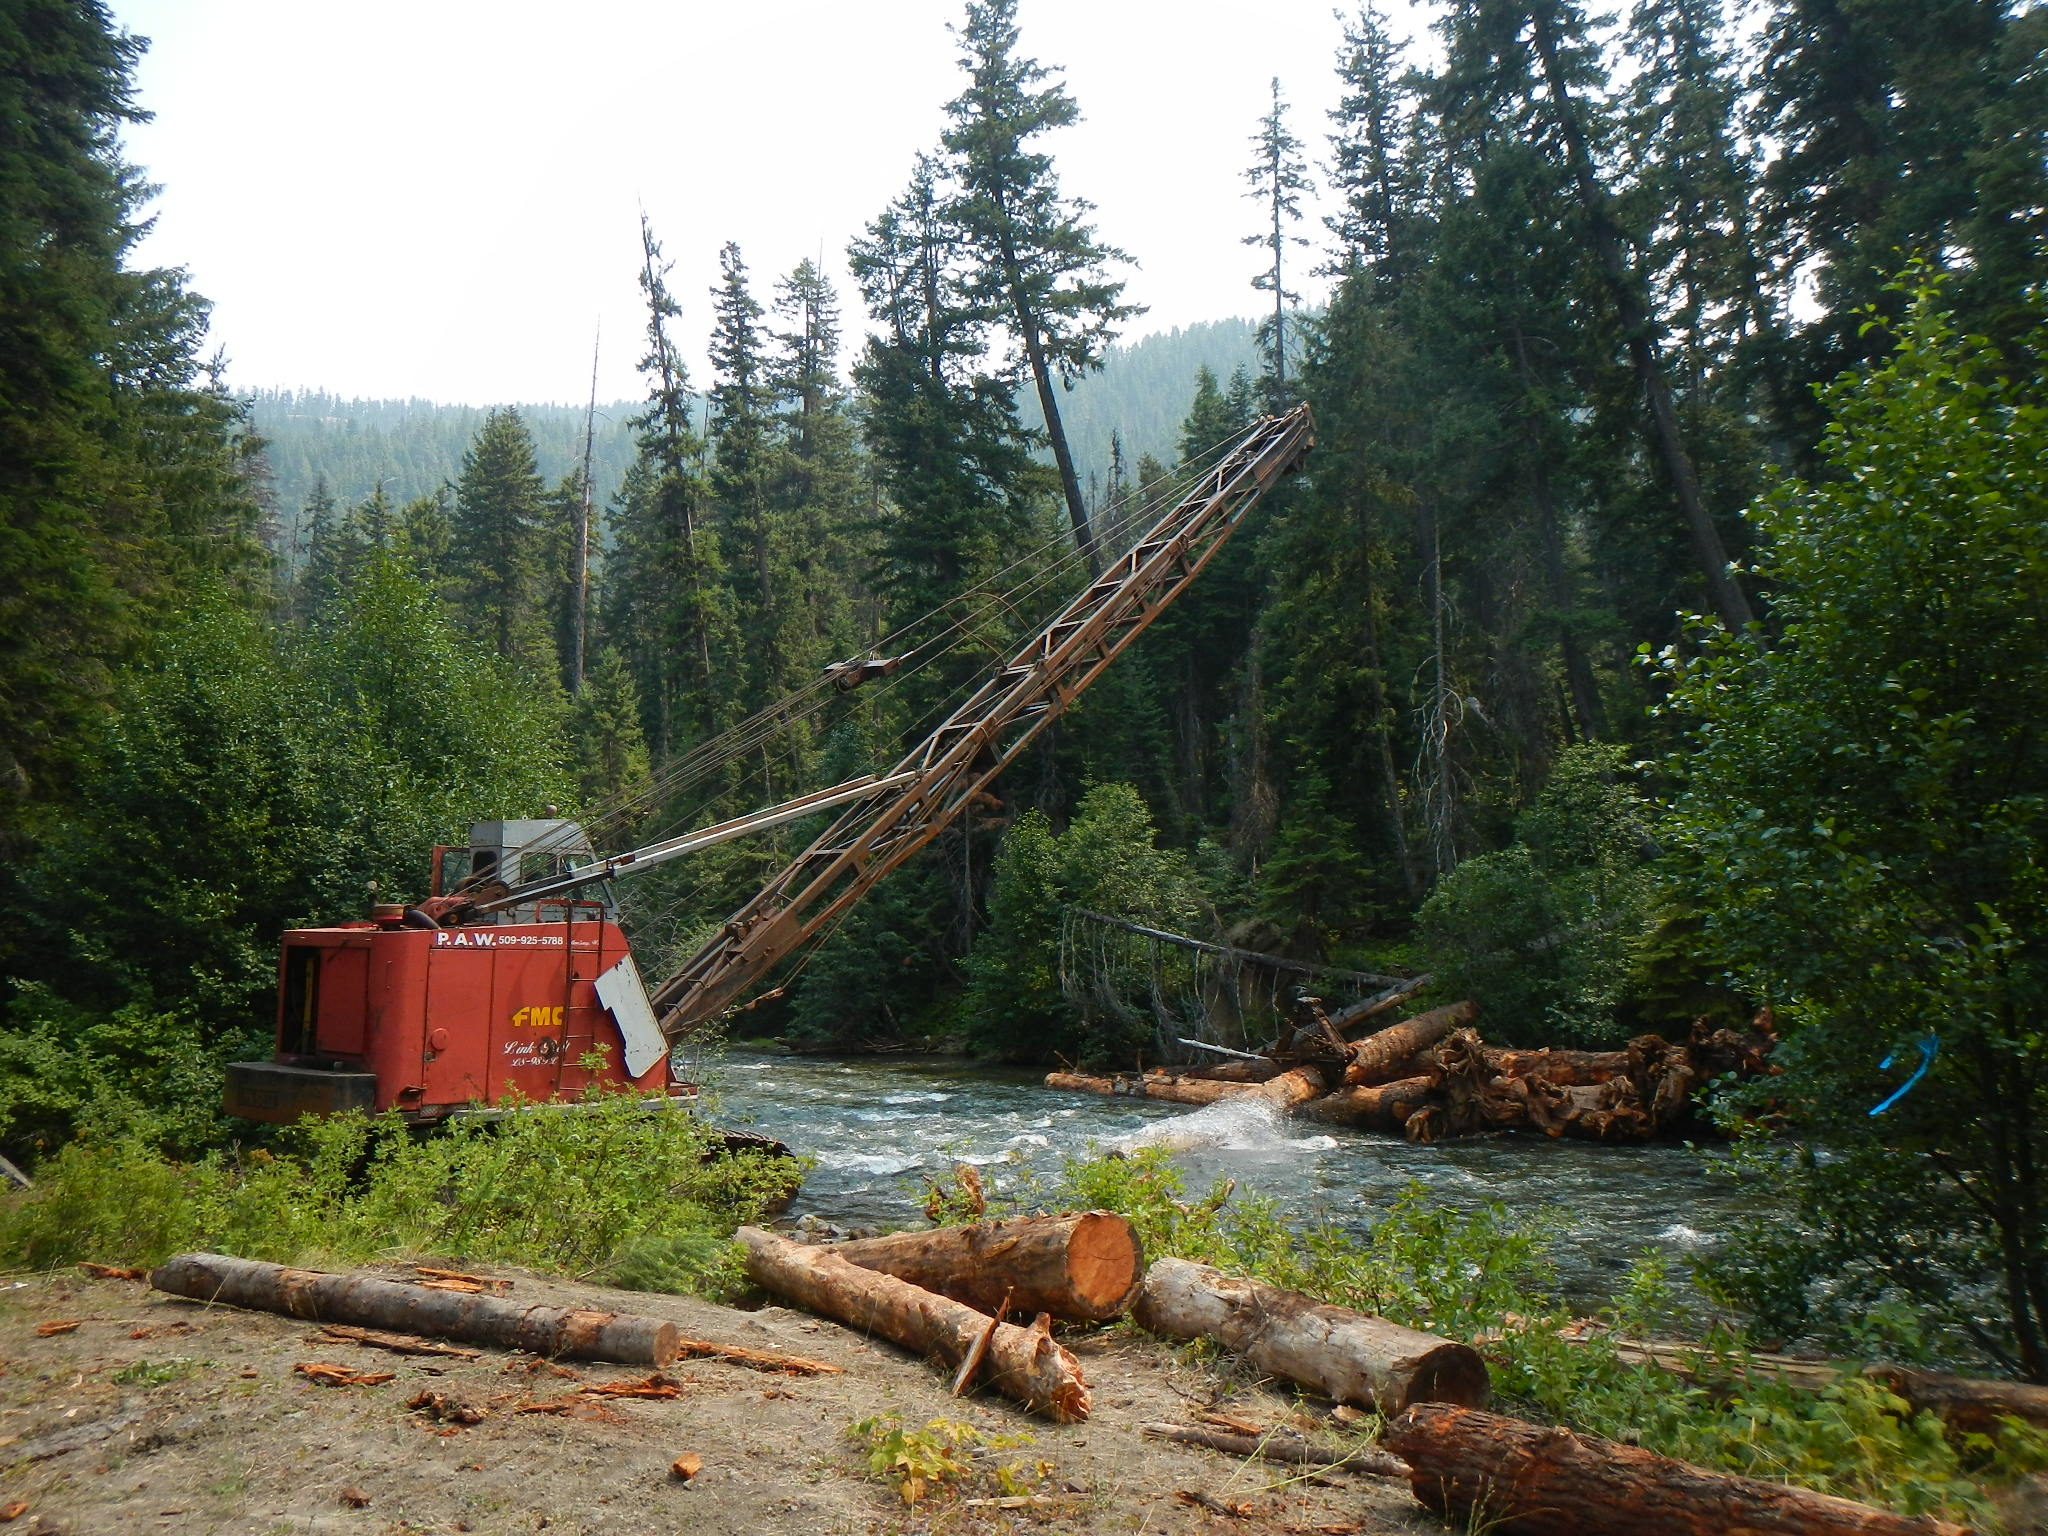 Cable Crane places logs in Bumping River